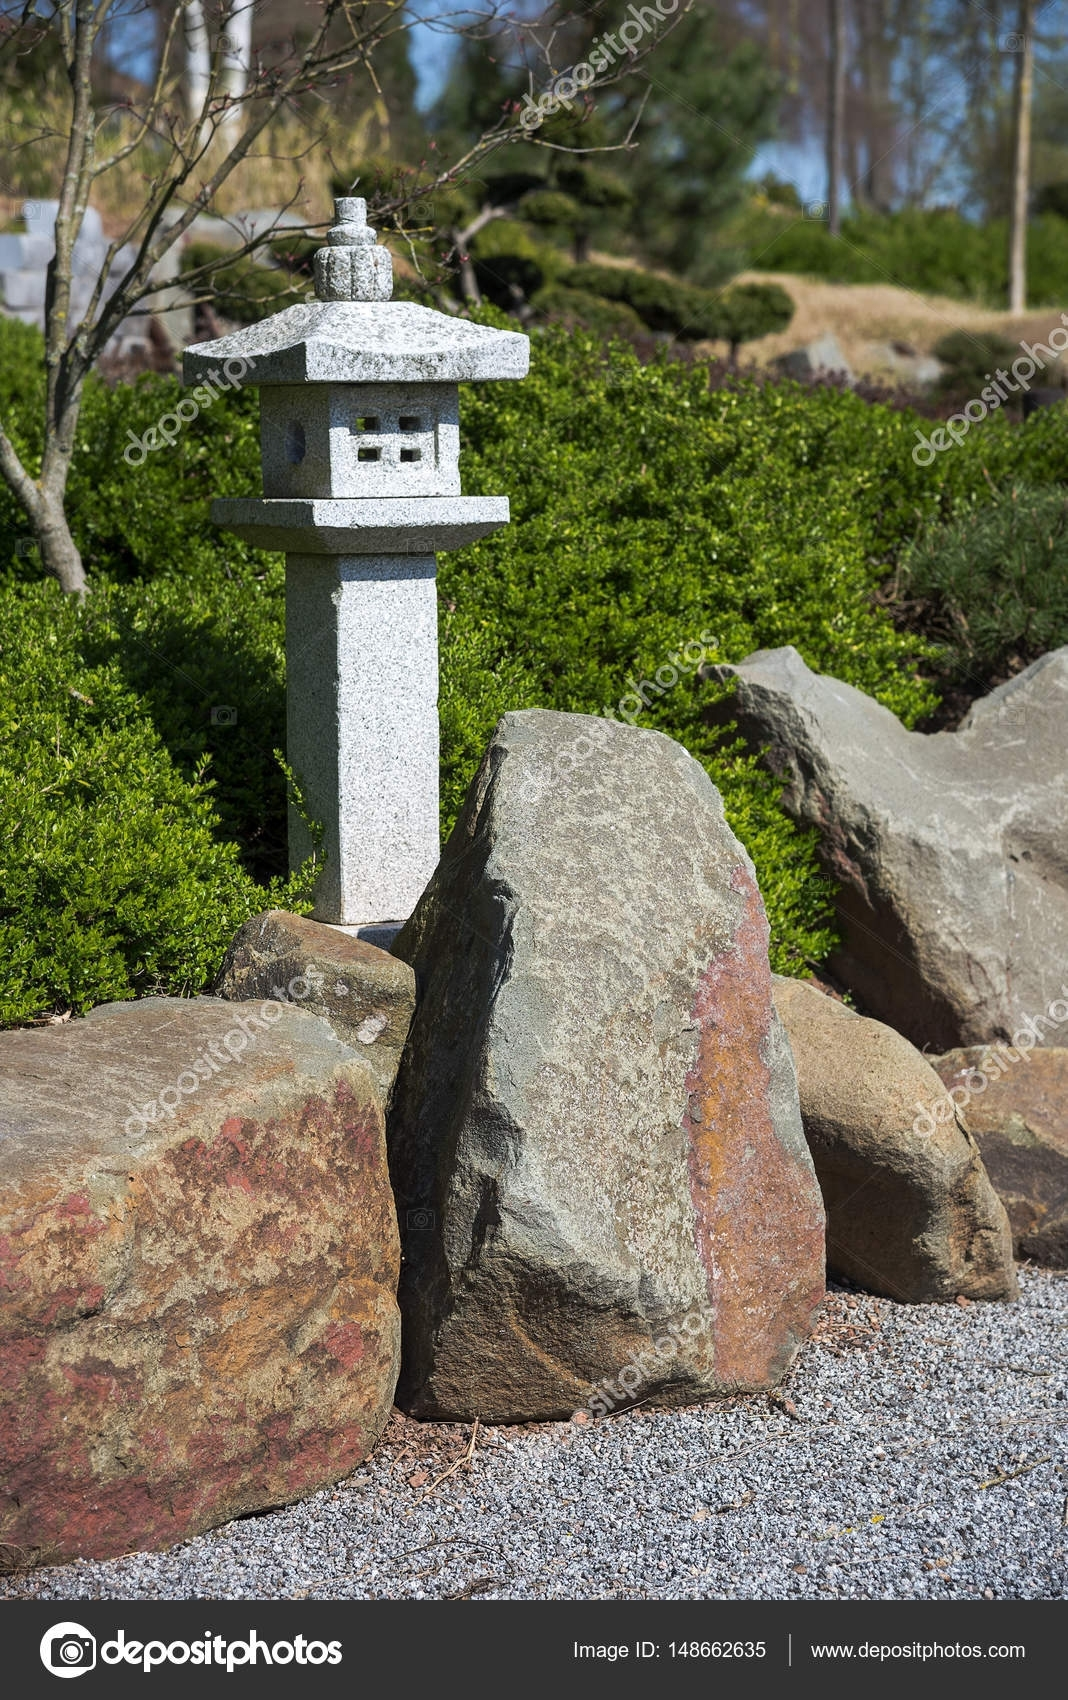 Stone Lantern, Rock And Raked Gravel, Zen Garden Landscape Design In regarding Zen Garden Landscape Design